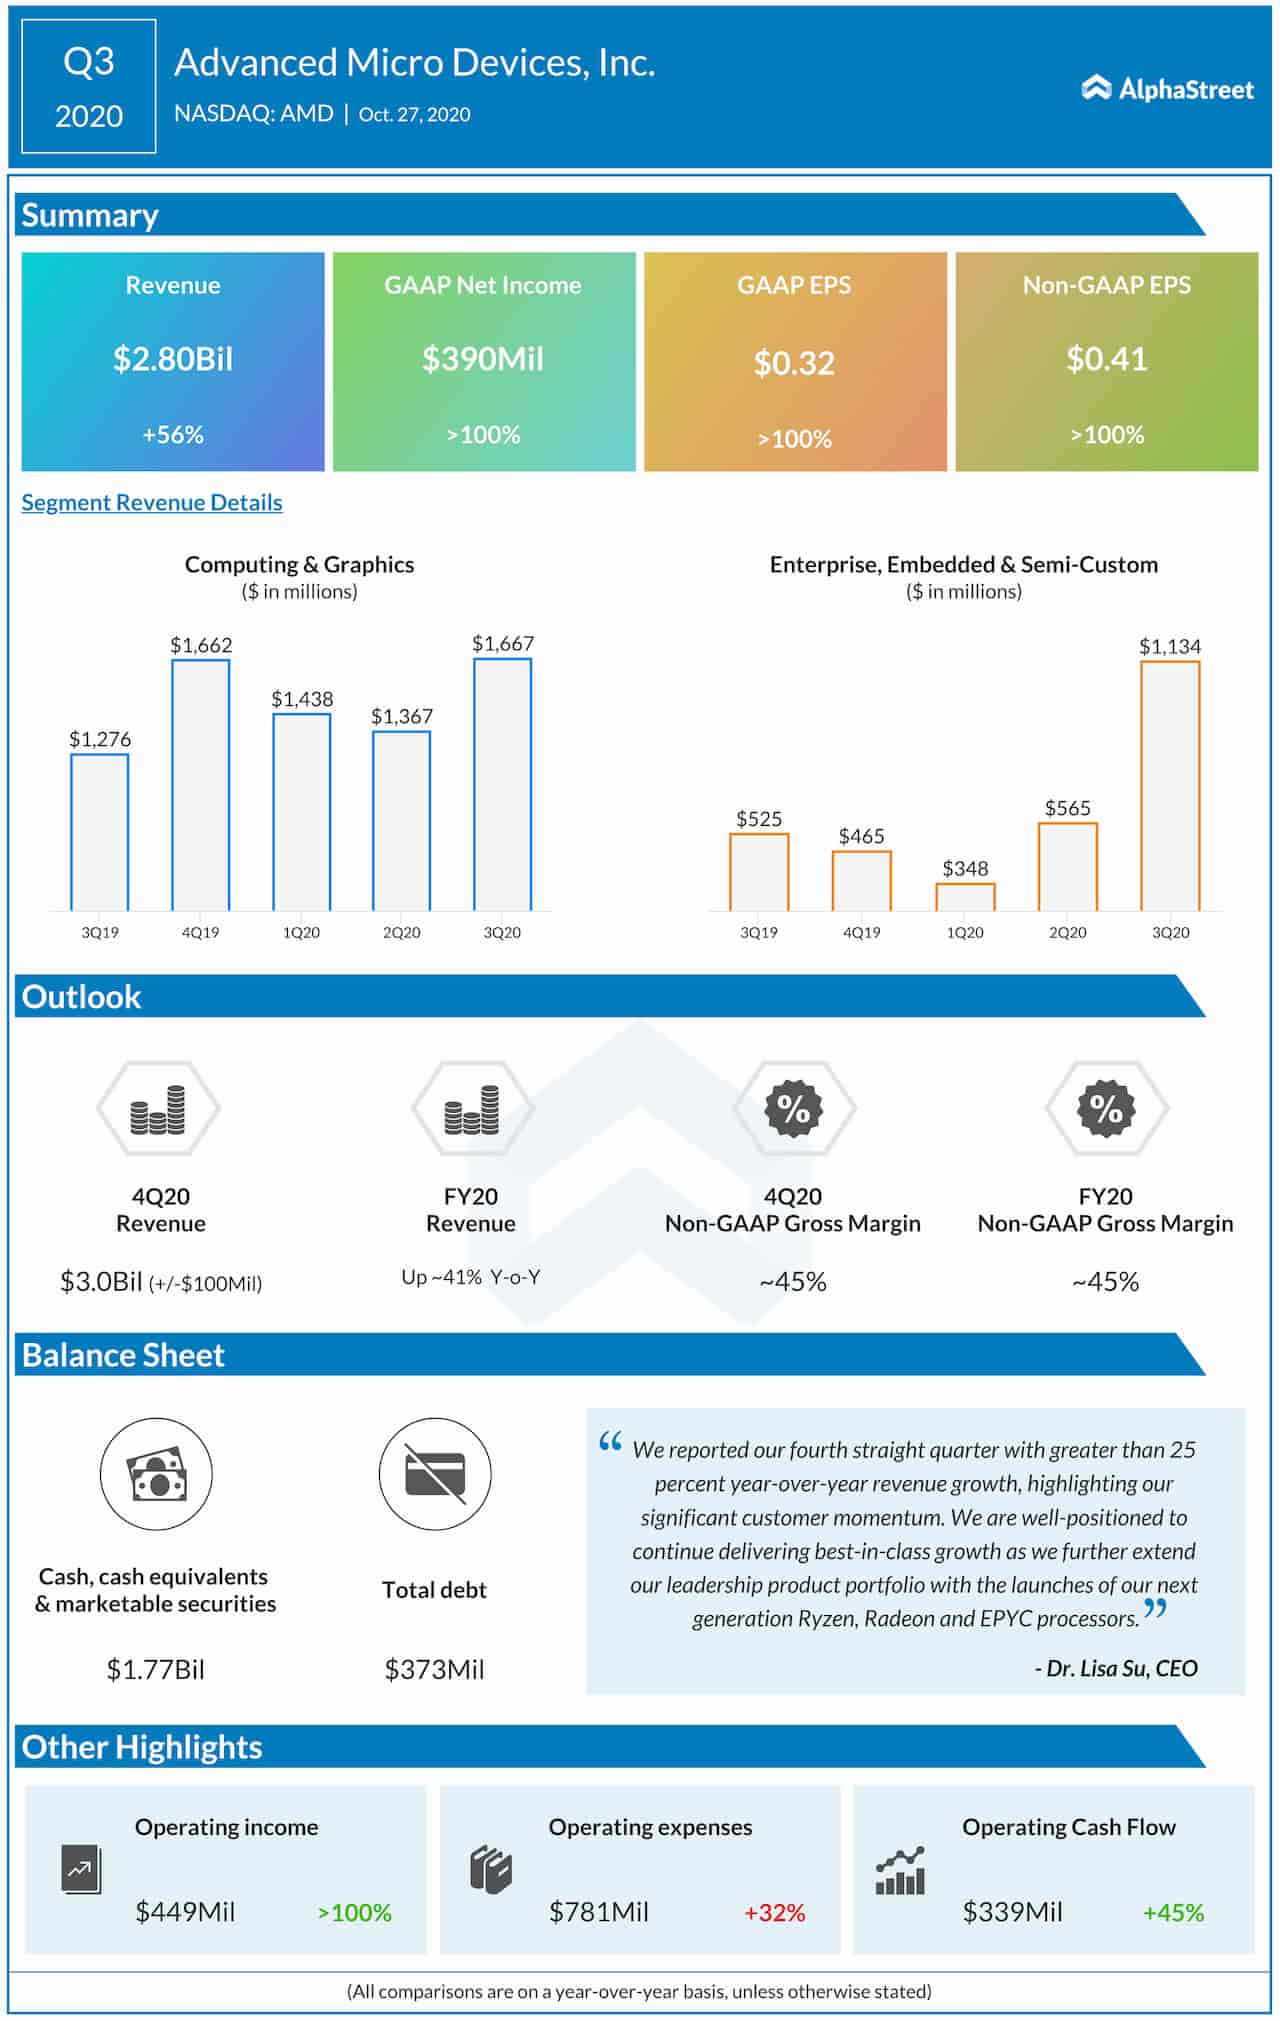 Advanced Micro Devices Q3 2020 earnings infographic